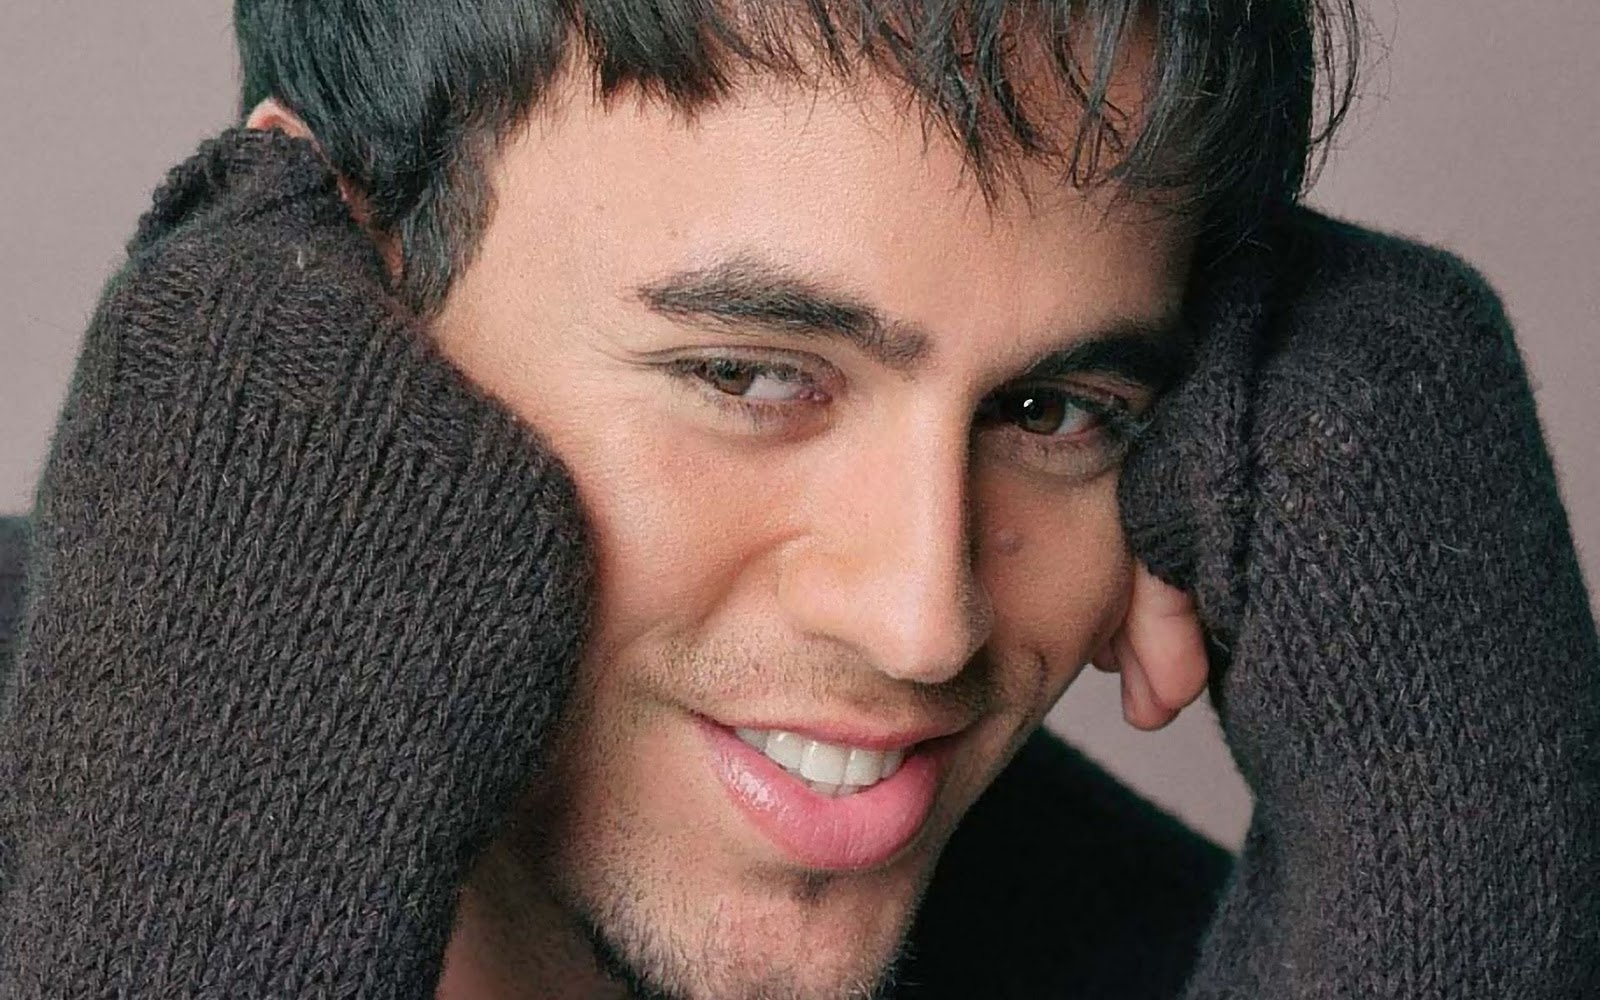 http://2.bp.blogspot.com/-eJZqIimWZHY/TuXG0QVgSKI/AAAAAAAAAm4/DhHCEENlleI/s1600/Enrique-Iglesias-pictures-desktop-Wallpapers-HD-photo-images-8.jpg